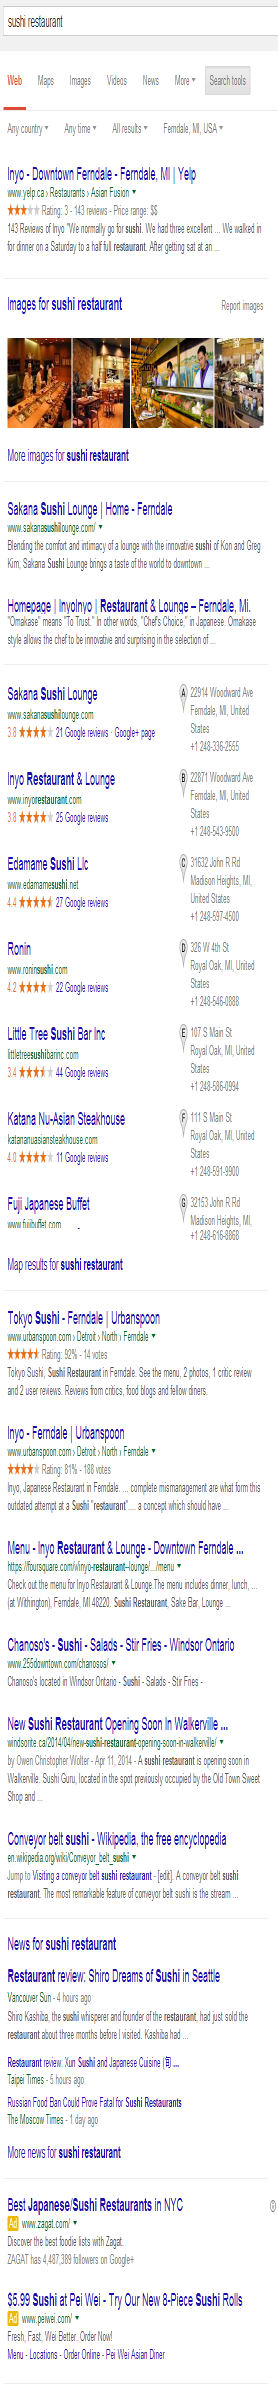 Sushi_Restaurant_Ferndale_Search_Canada